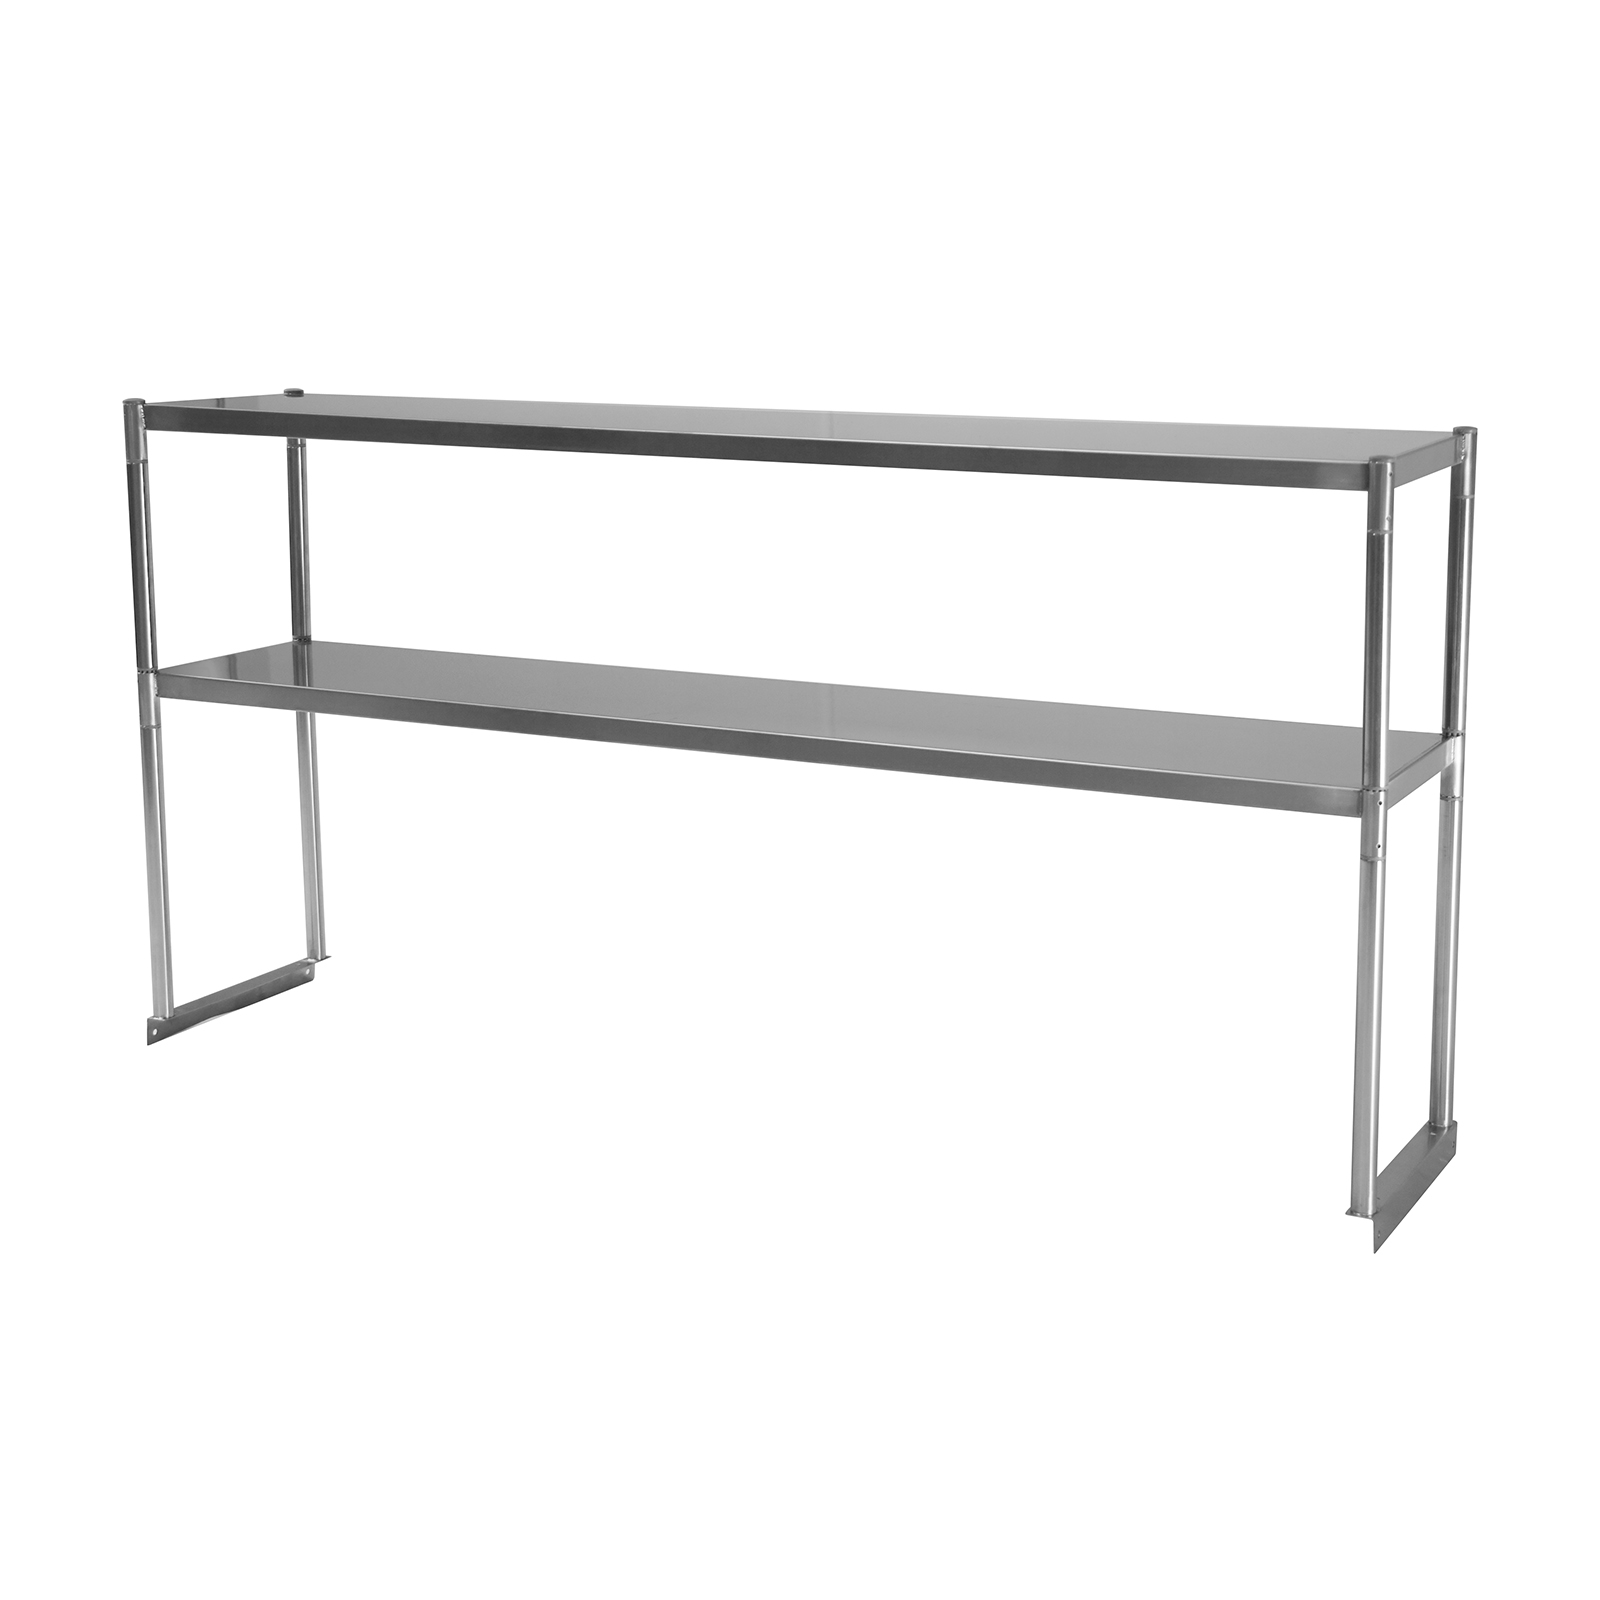 Turbo Air TSOS-6R overshelf, table-mounted